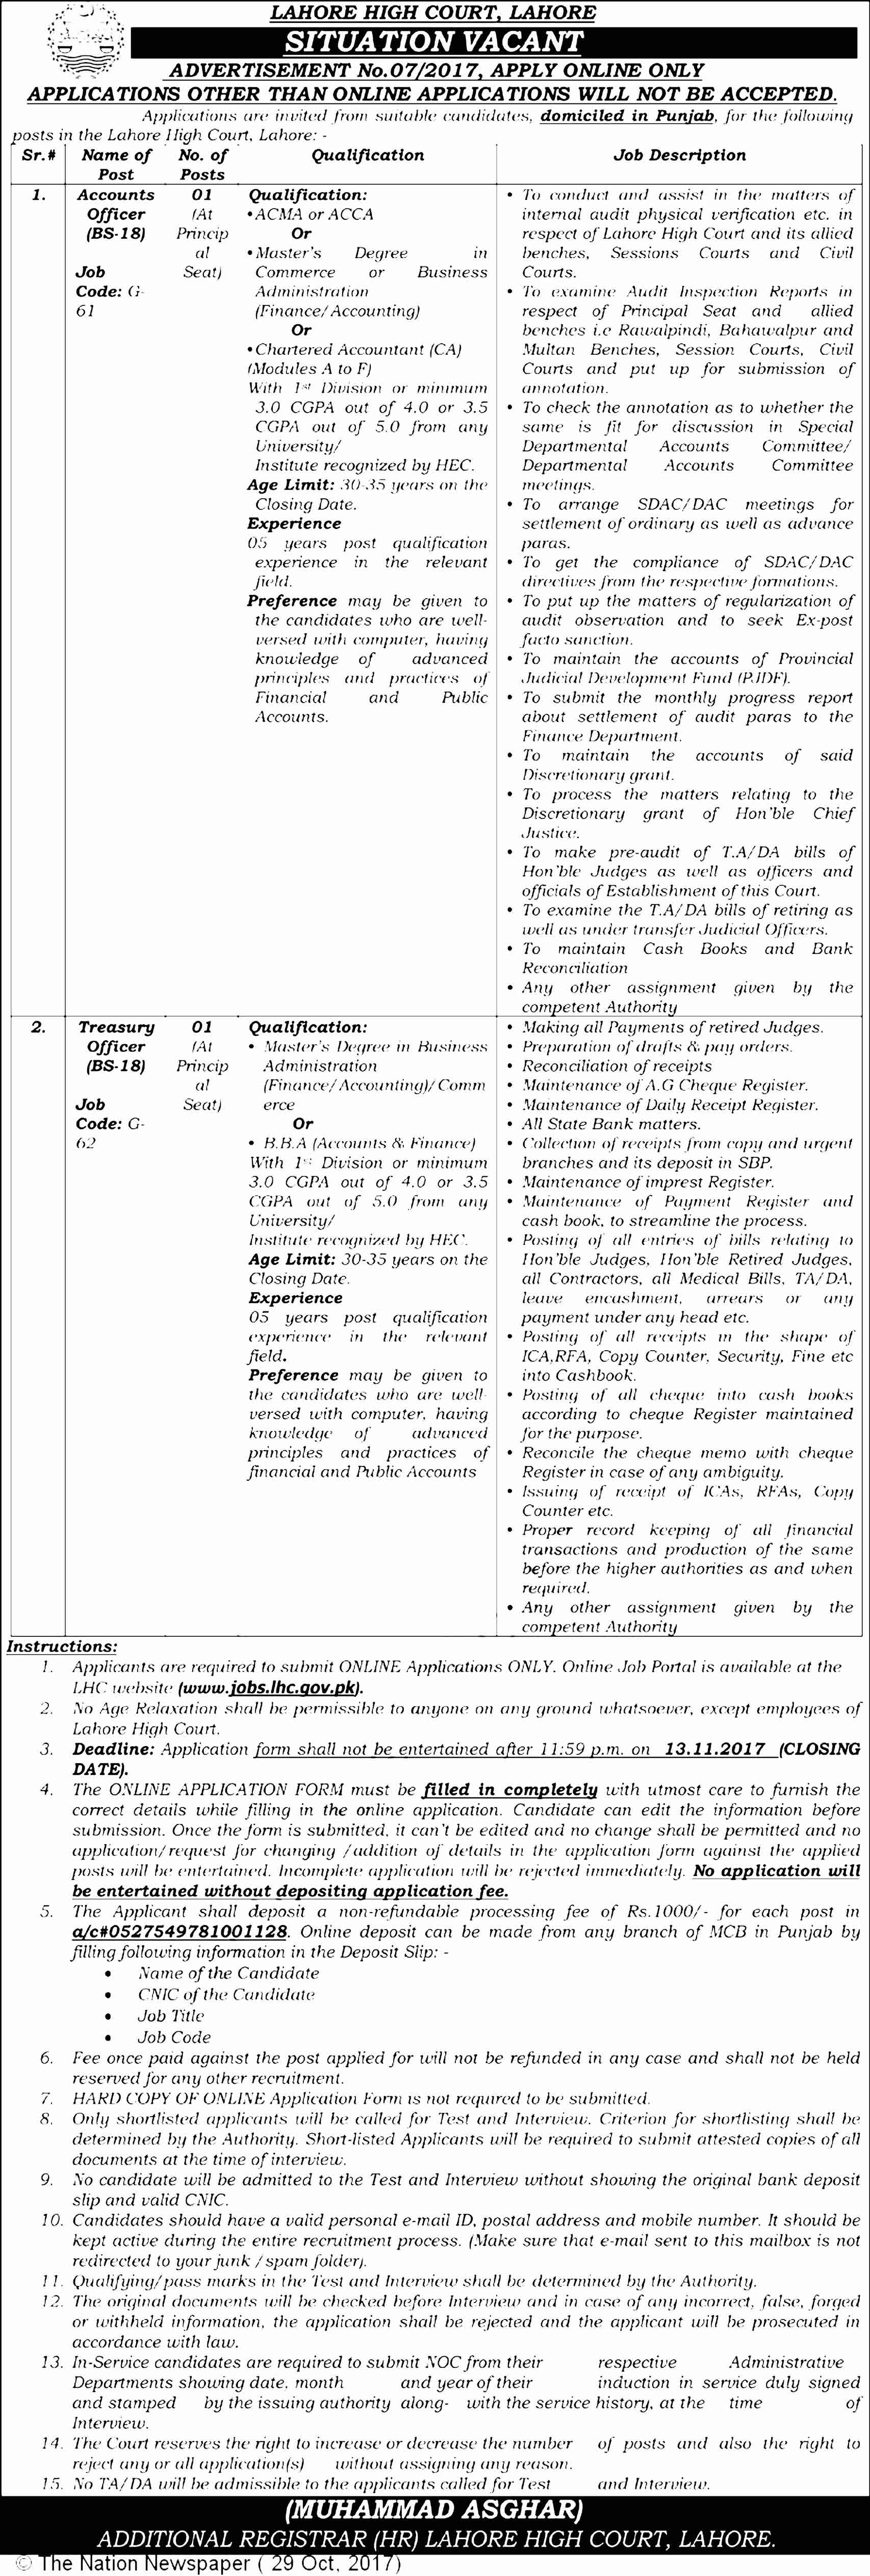 Lahore High Court Jobs 2017 Accounts Officer and Treasury Officer BS-18 jobs November Advertisement